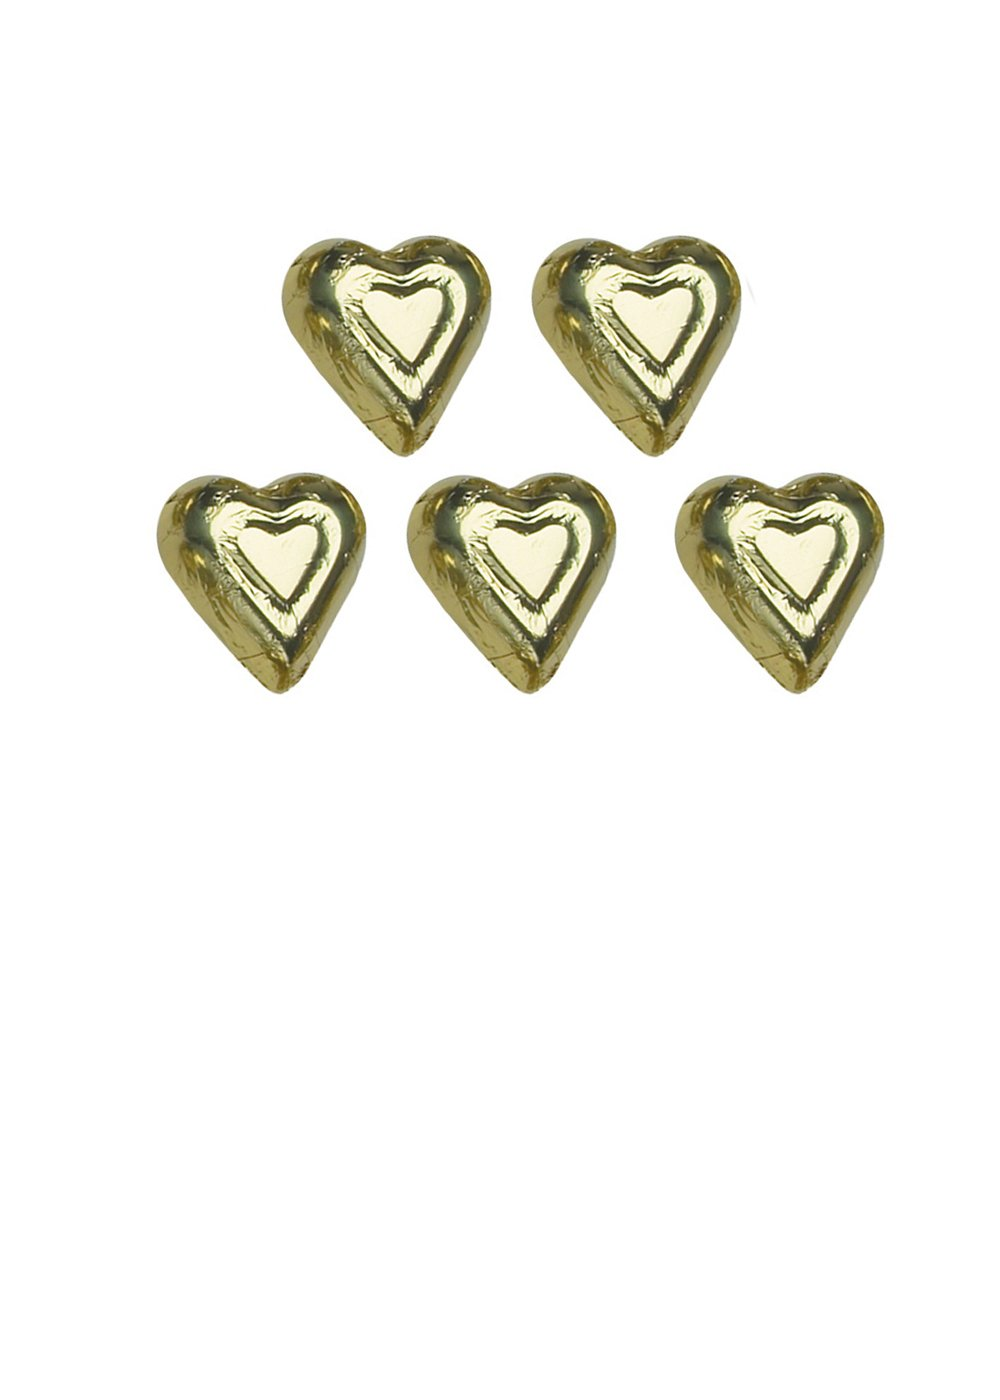 MAD - MINI HEARTS GOLD